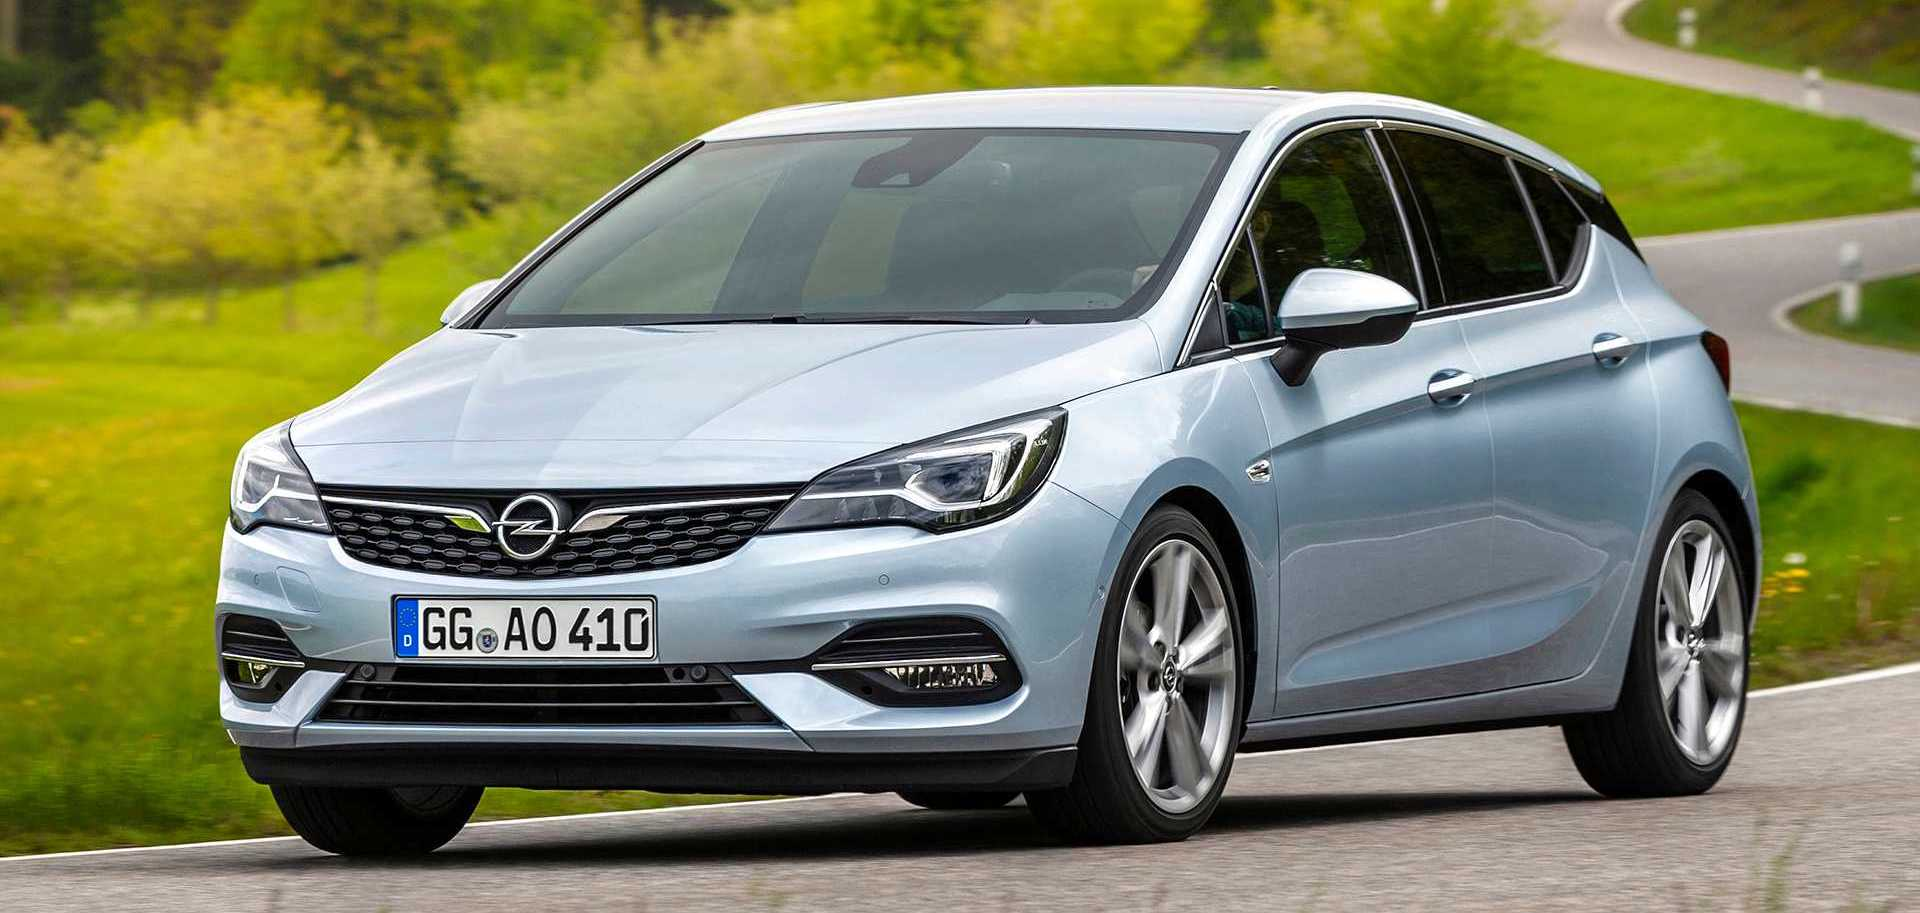 Opel Astra Facelift Debuts With Subtle Redesign, Major Tech Upgrades